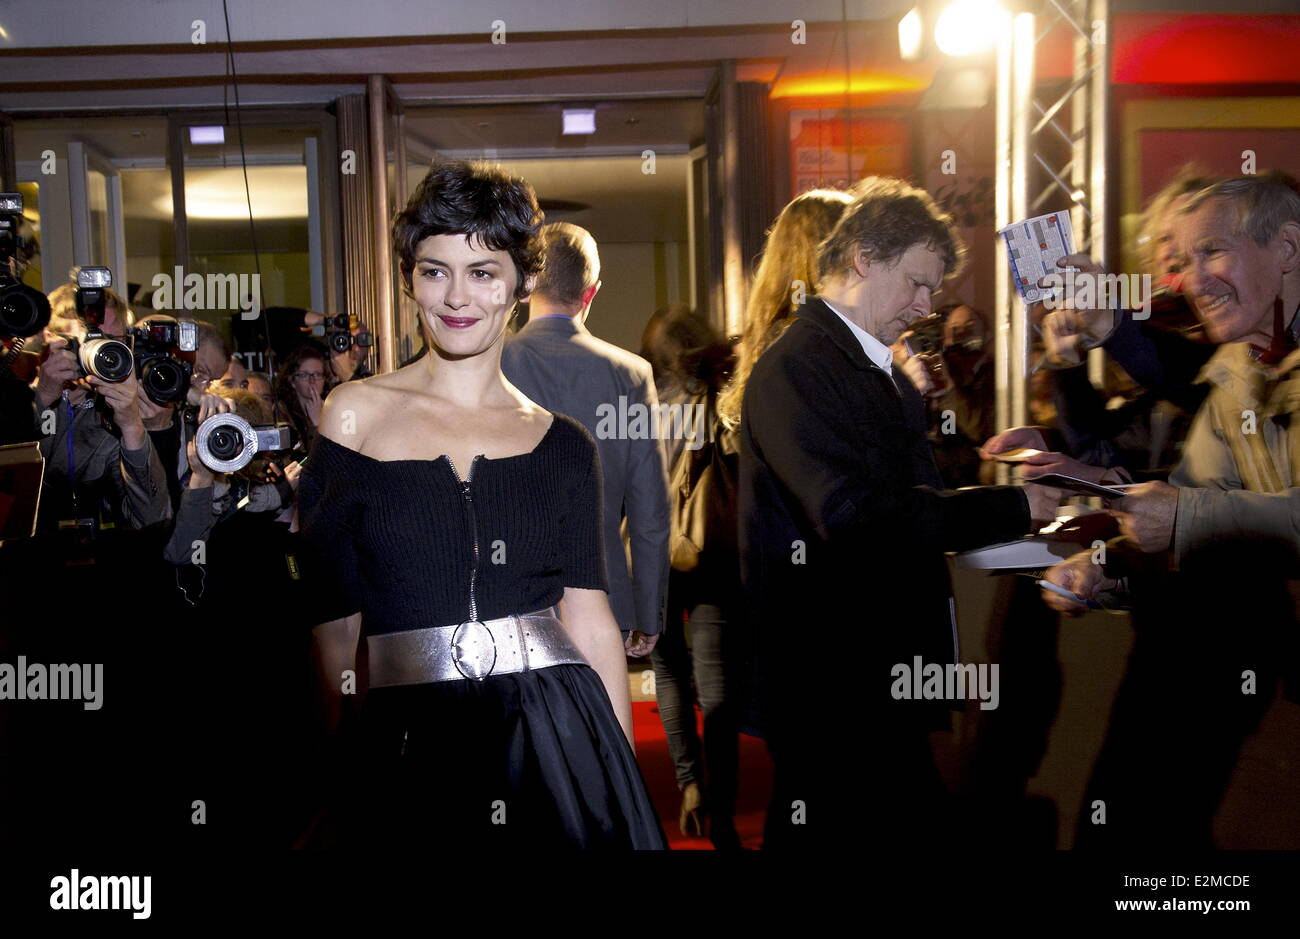 Audrey Tautou at Schaum der Tage premiere at Cinema Paris movie theater.  Where: Berlin, Germany When: 17 Sep 2013 - Stock Image